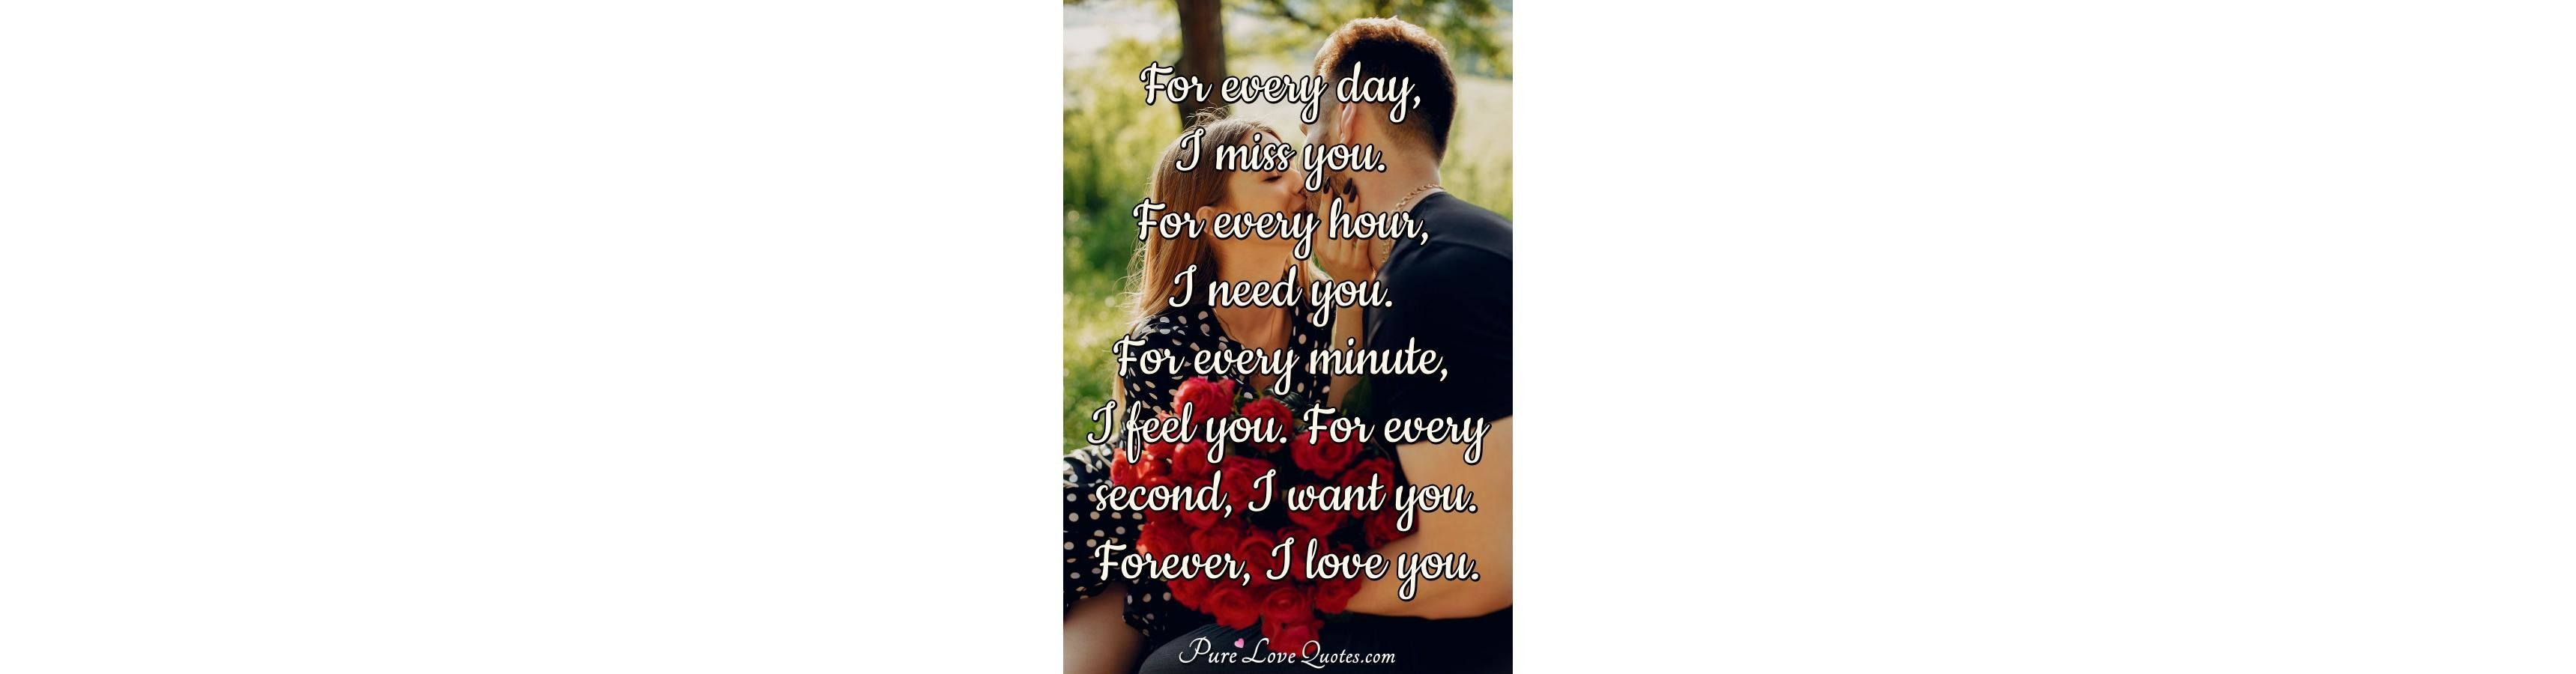 For every day, I miss you  For every hour, I need you  For